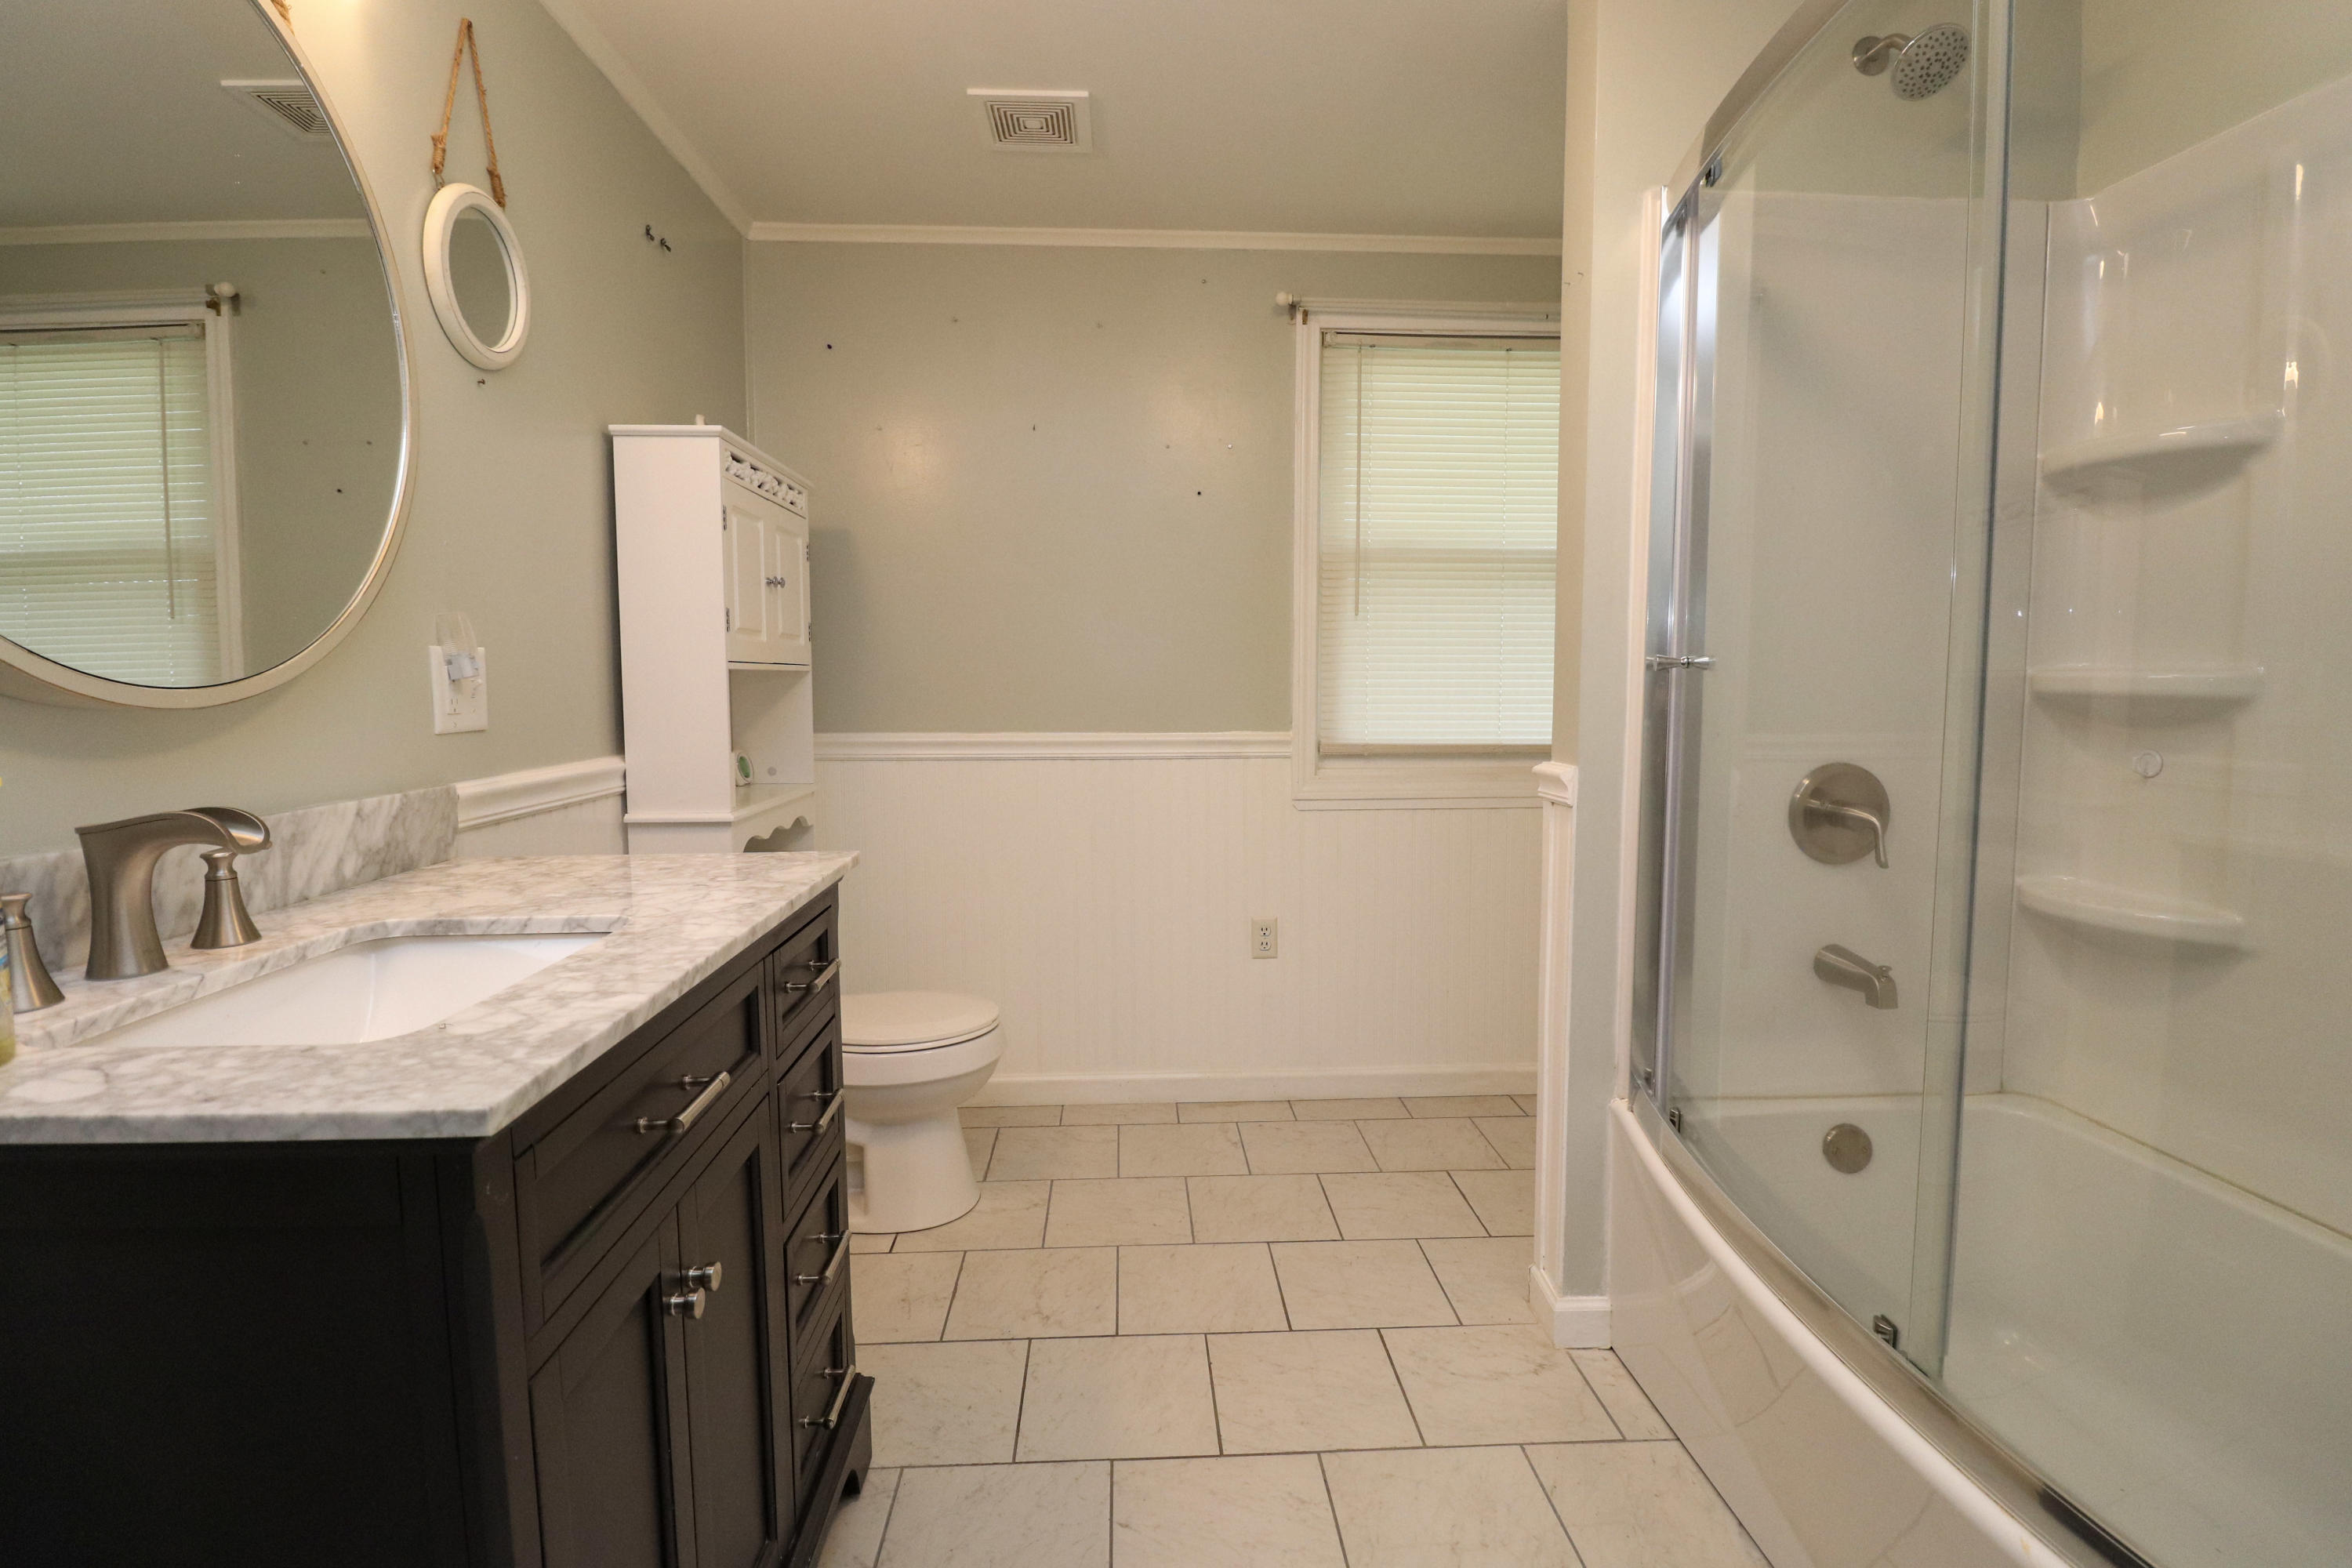 132 CARDINAL DRIVE, Lock Haven, PA 17745, 2 Bedrooms Bedrooms, ,1 BathroomBathrooms,Residential,For sale,CARDINAL,WB-92484